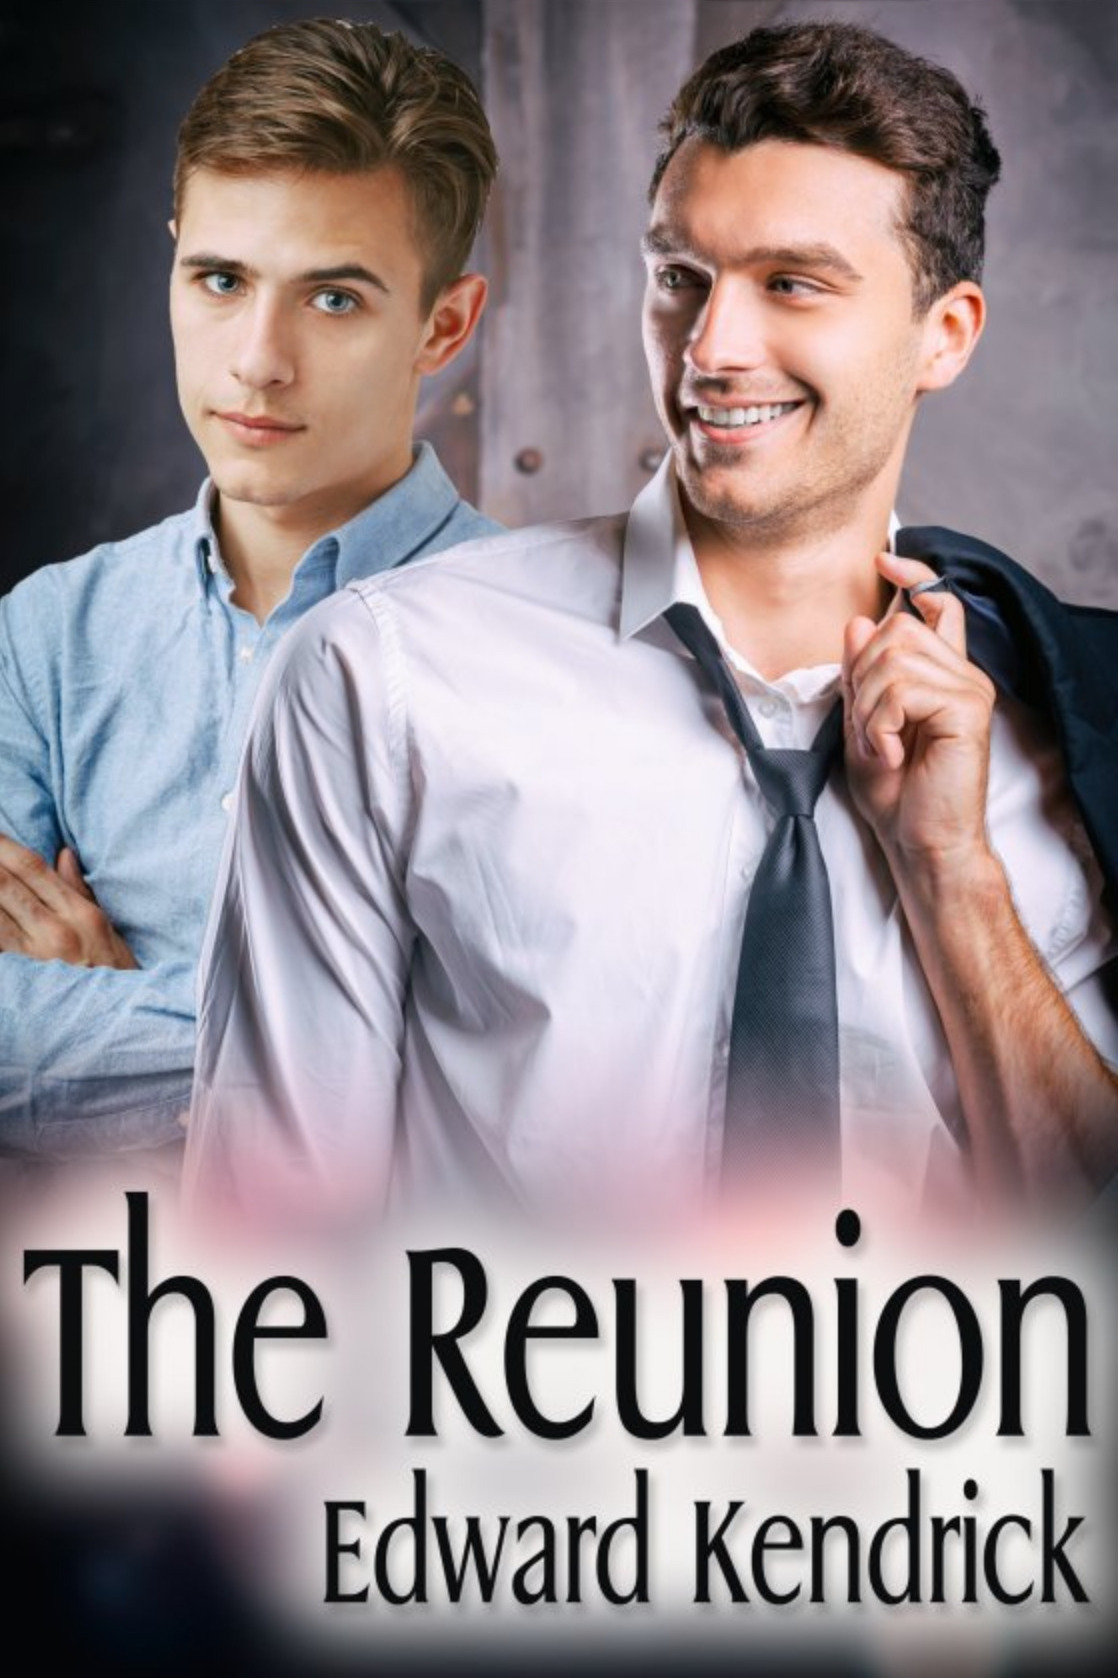 Review: The Reunion by Edward Kendrick